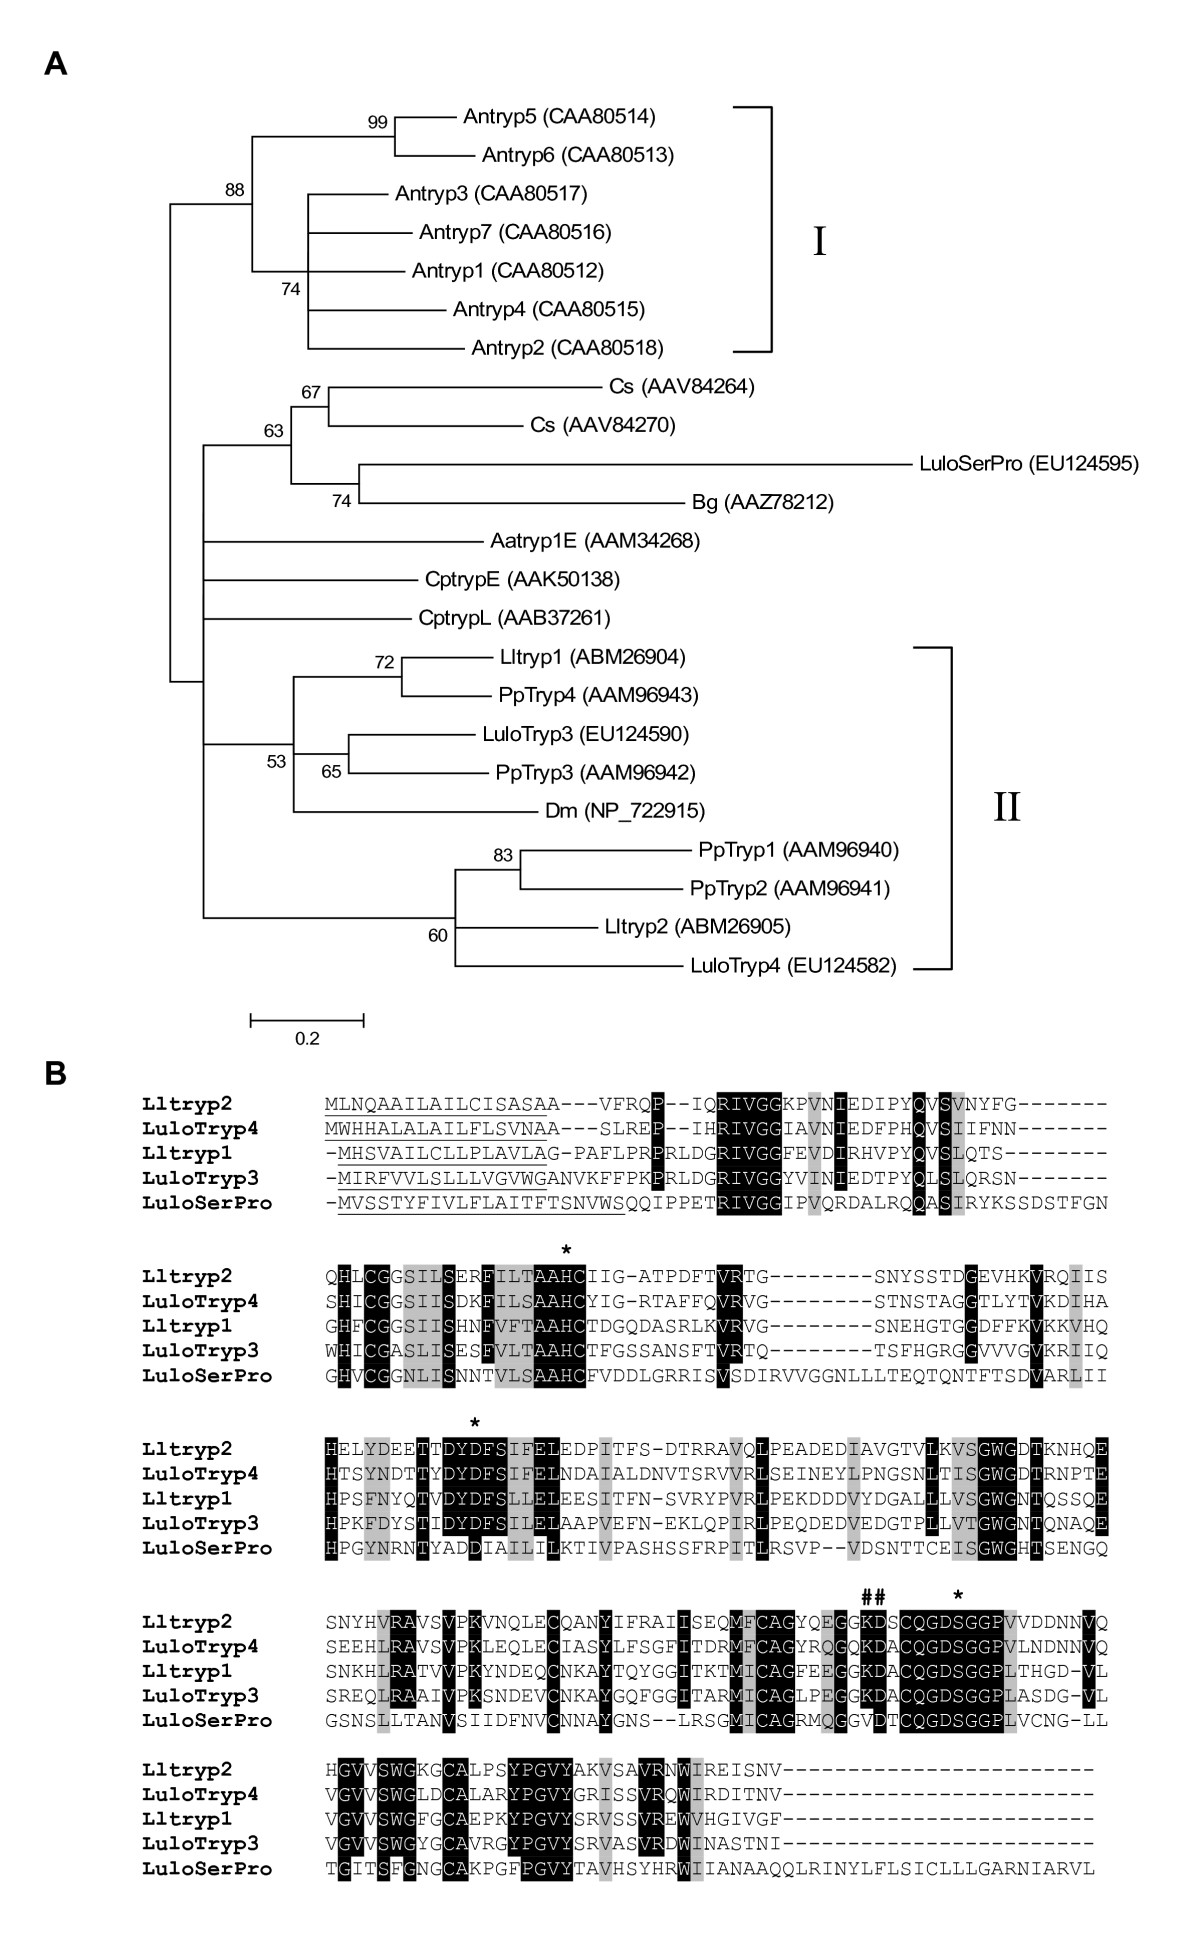 https://static-content.springer.com/image/art%3A10.1186%2F1471-2164-9-15/MediaObjects/12864_2007_Article_1209_Fig2_HTML.jpg